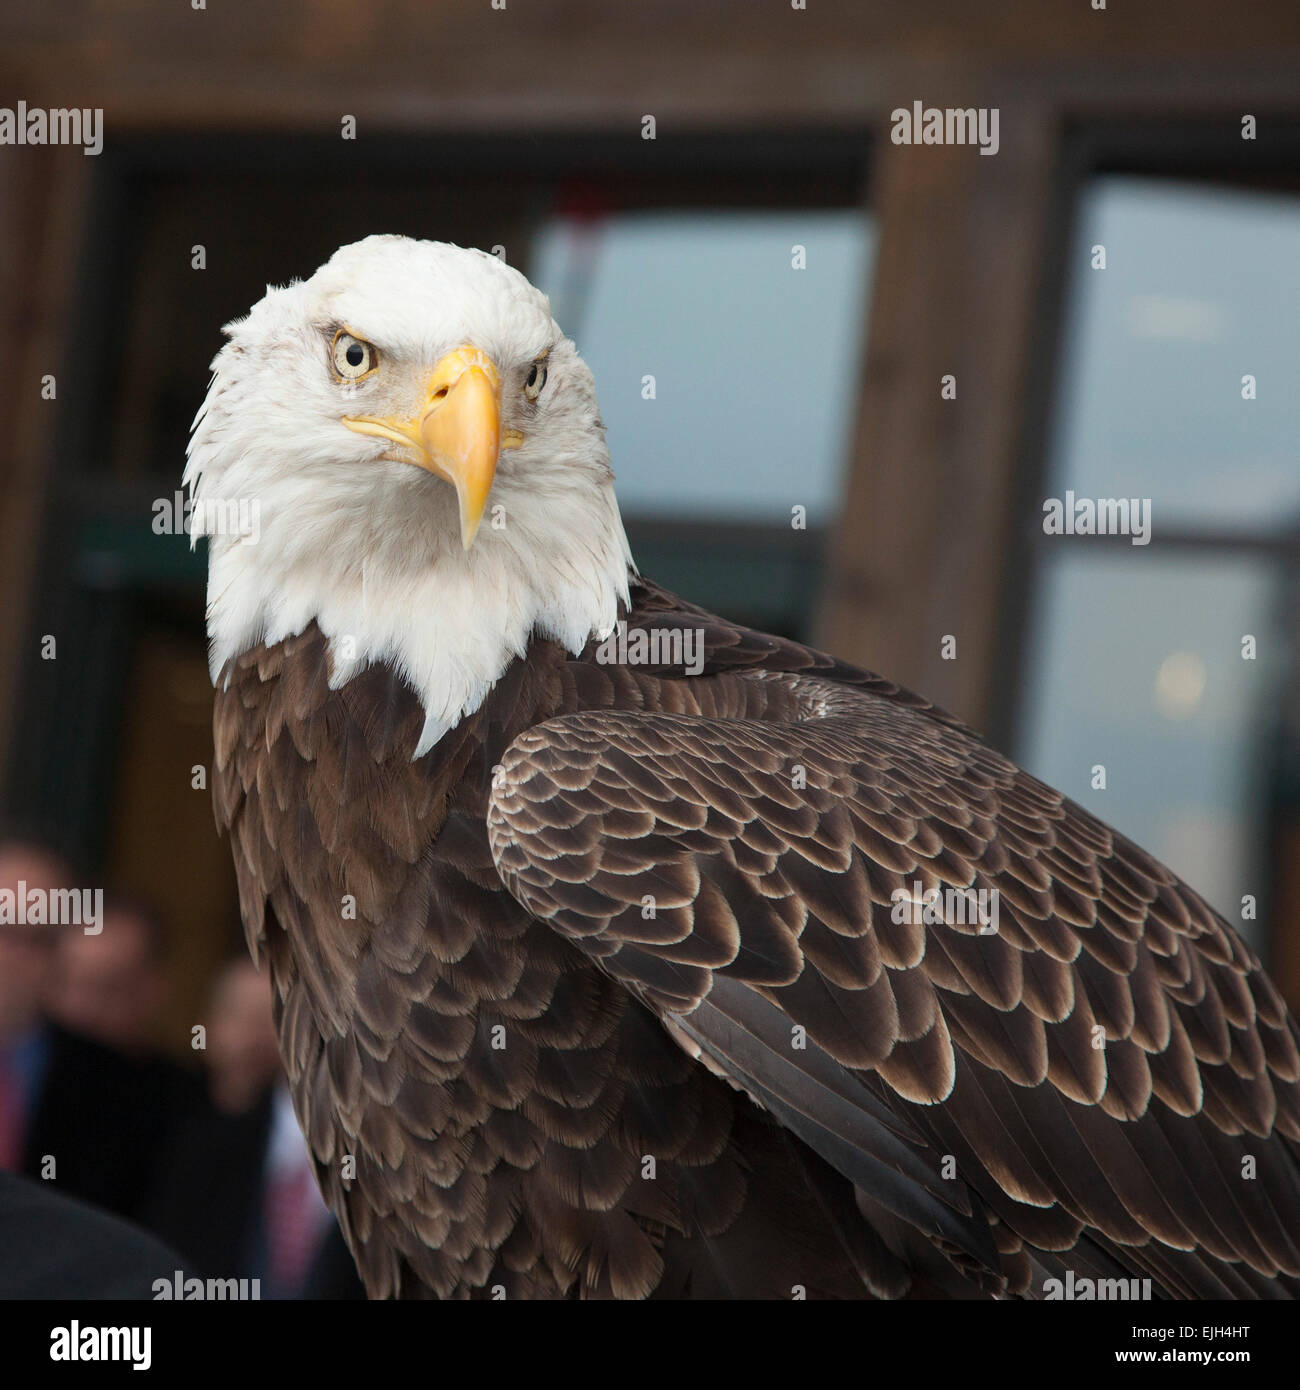 Troy, Michigan - A 25-year-old bald eagle named Challenger from the American Eagle Foundation. - Stock Image